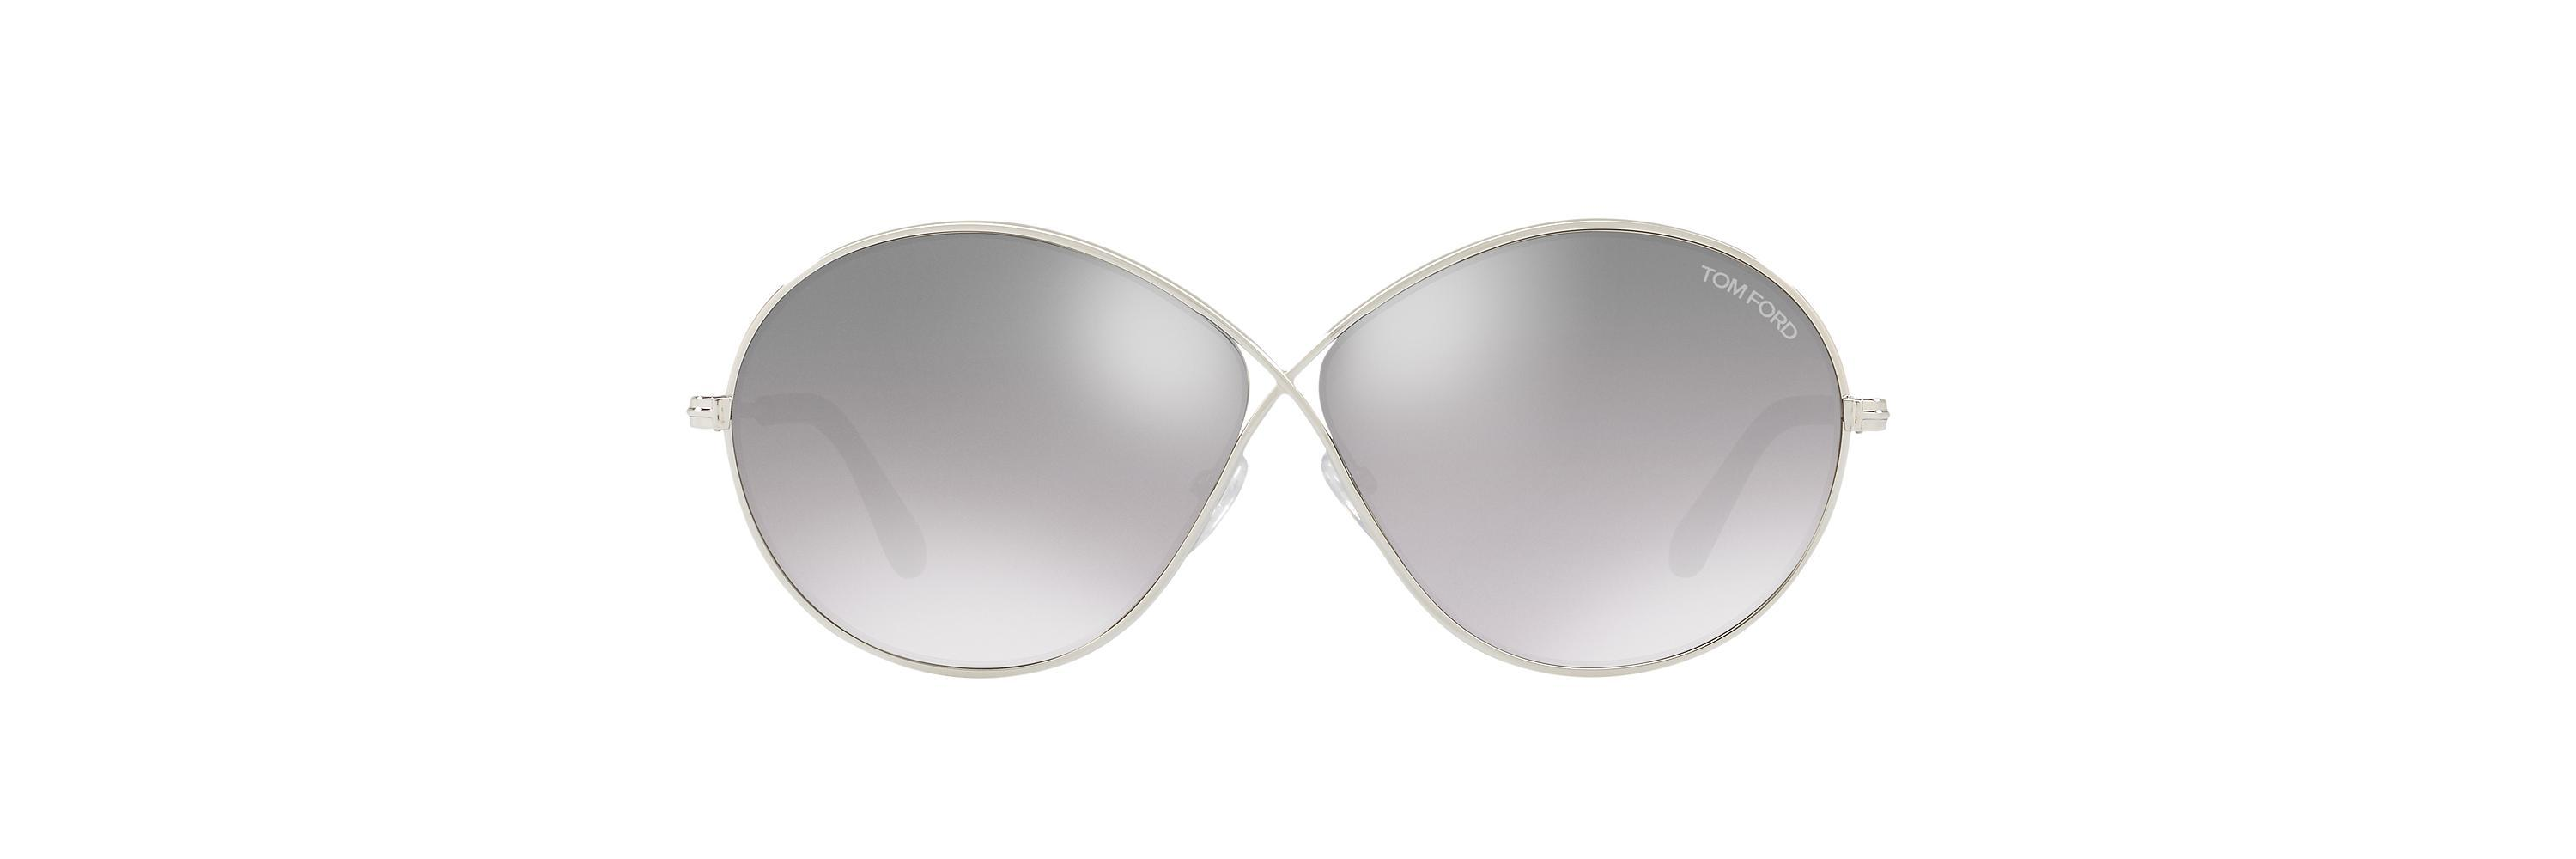 df25c44475c8 Lyst - Tom Ford Ft0564 Rania-02 64 in Gray